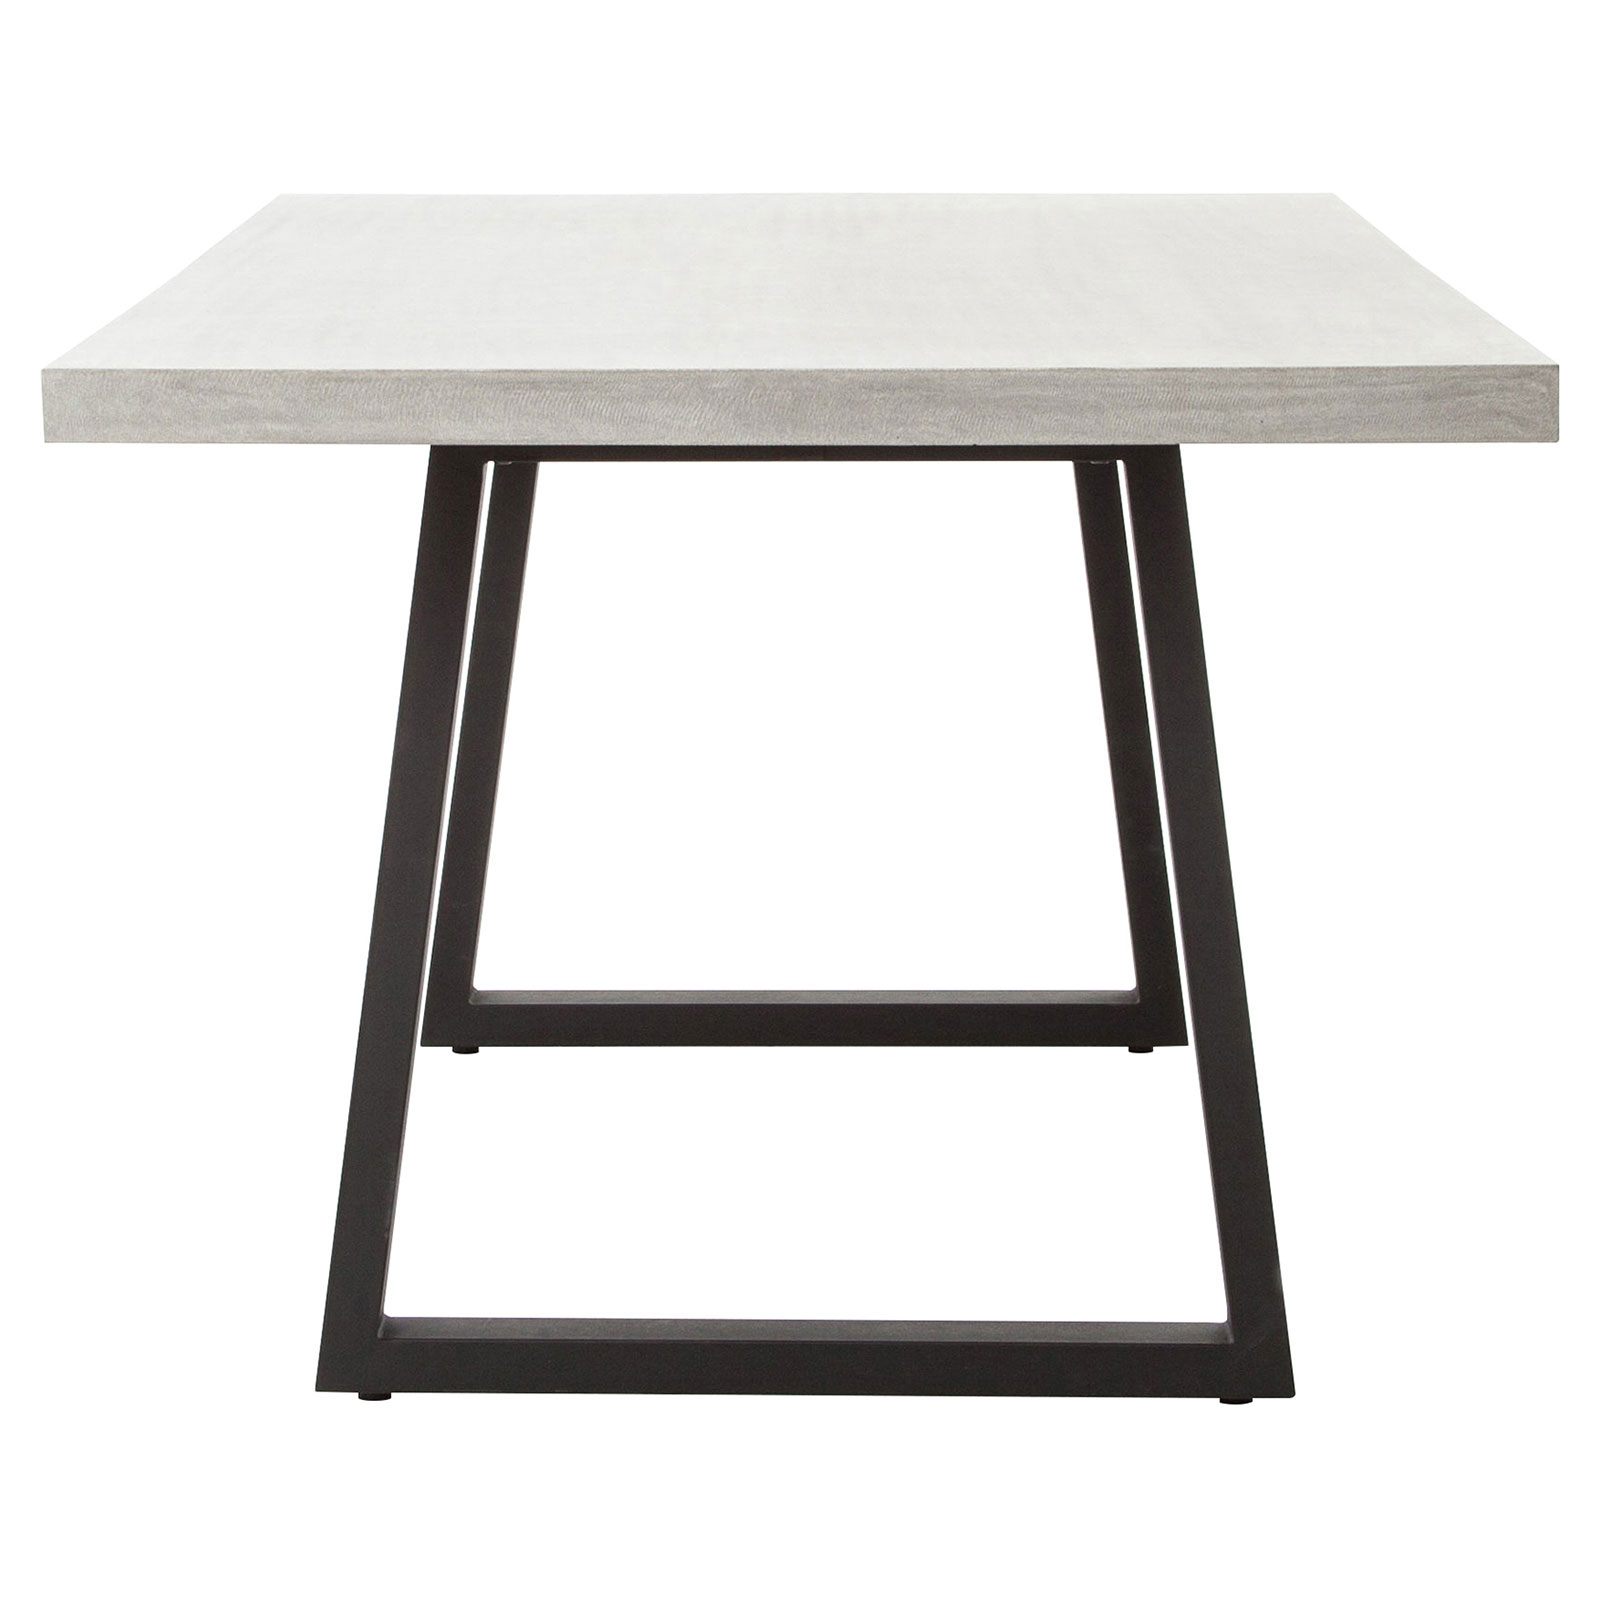 Maceo Modern Classic Rectangular Concrete Metal Dining Table - 79 inch